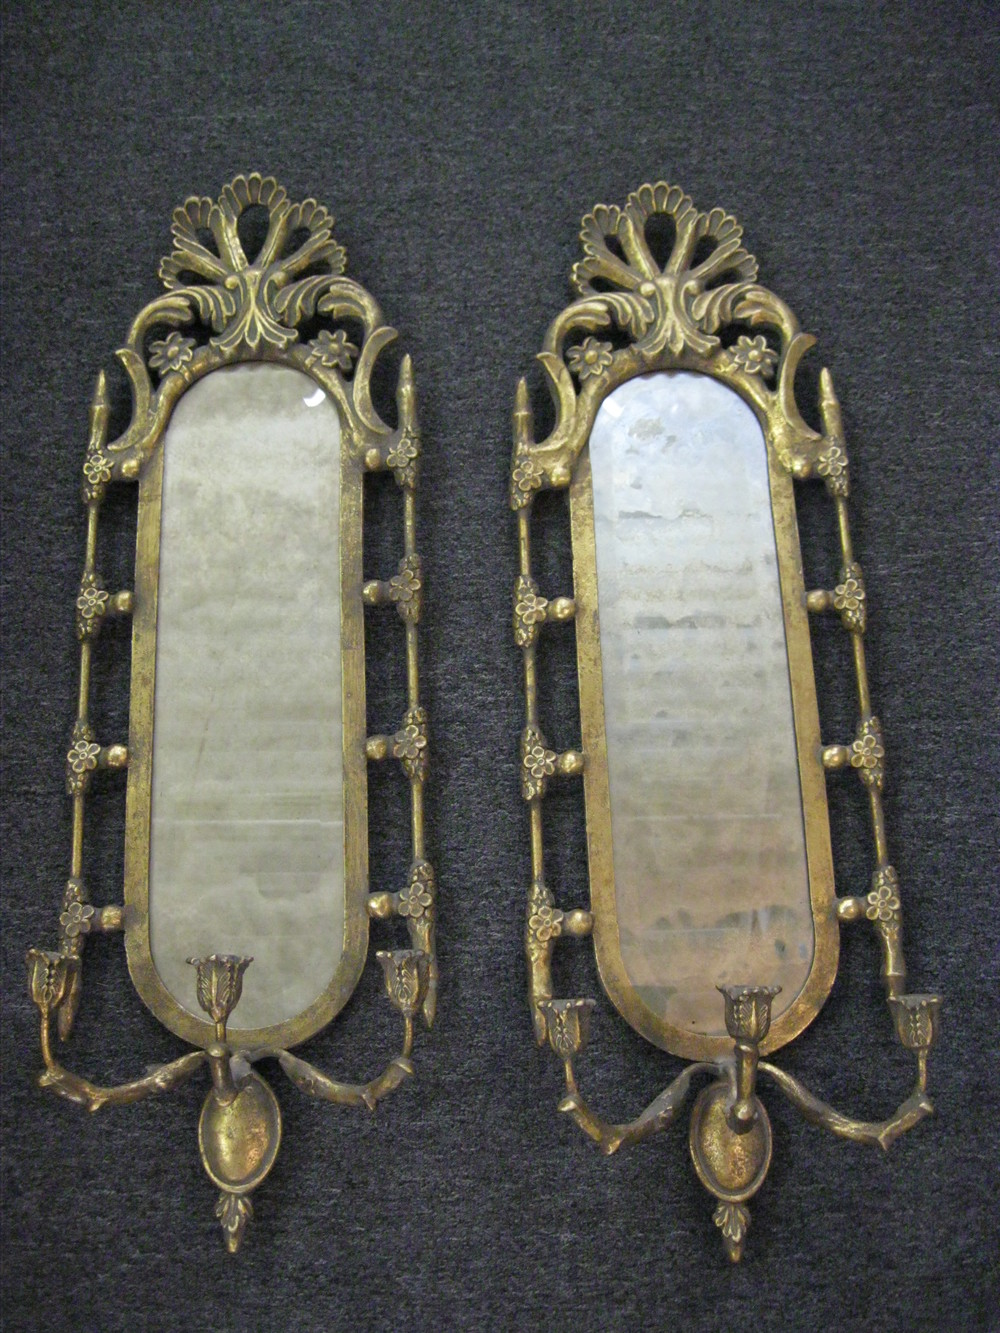 Pr. gold framed Venetian style mirrored candle wall scounces